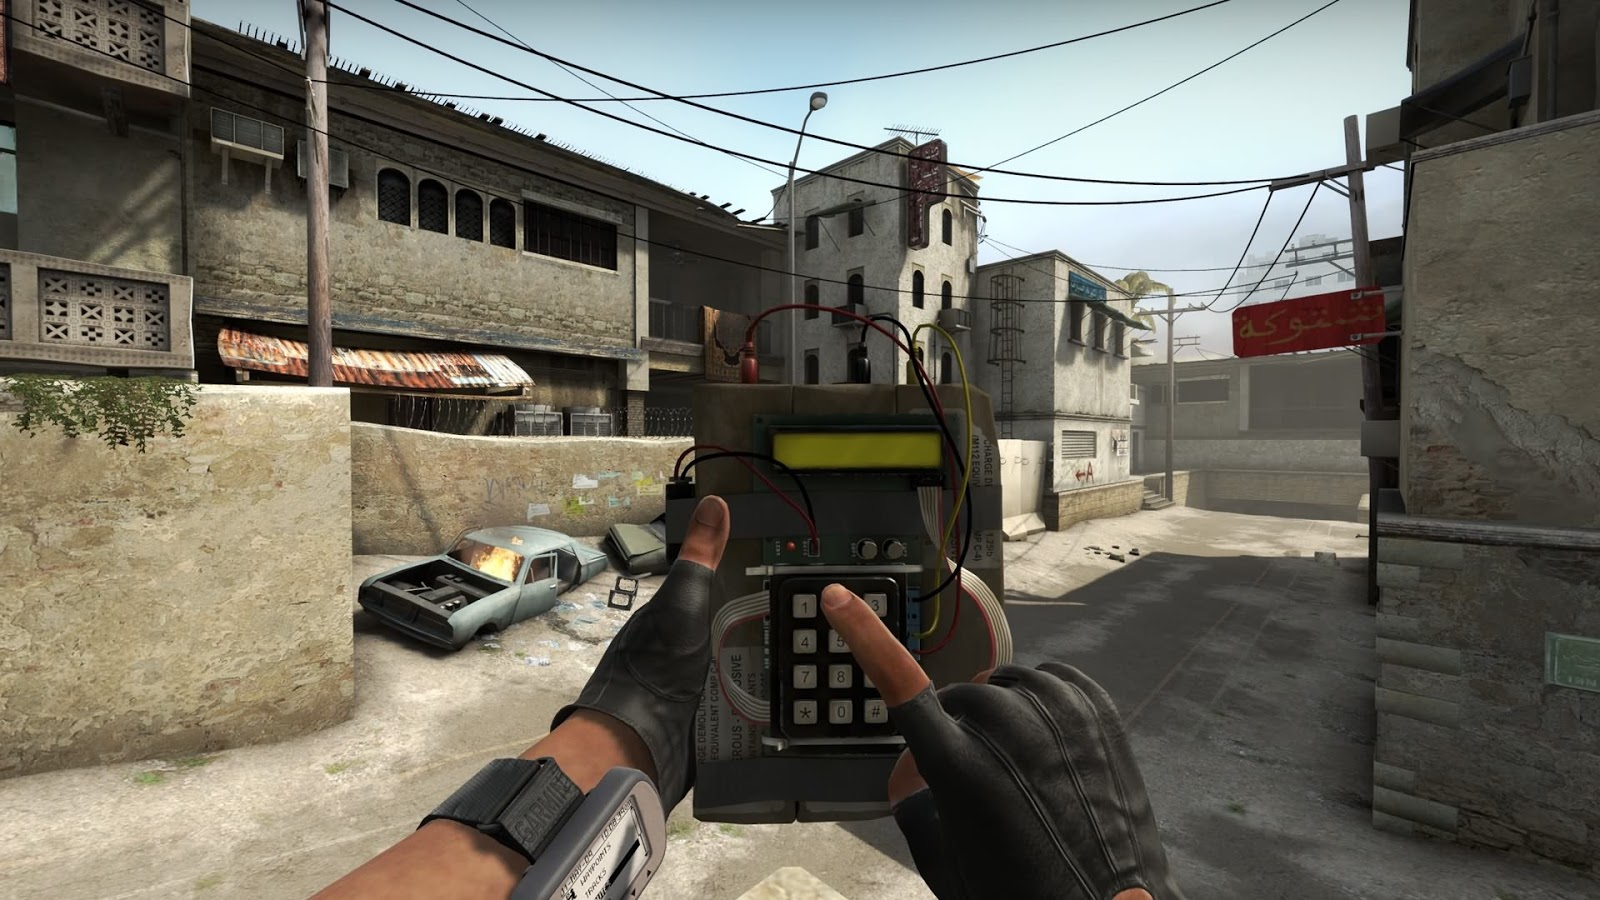 Download free counter strike game full version.